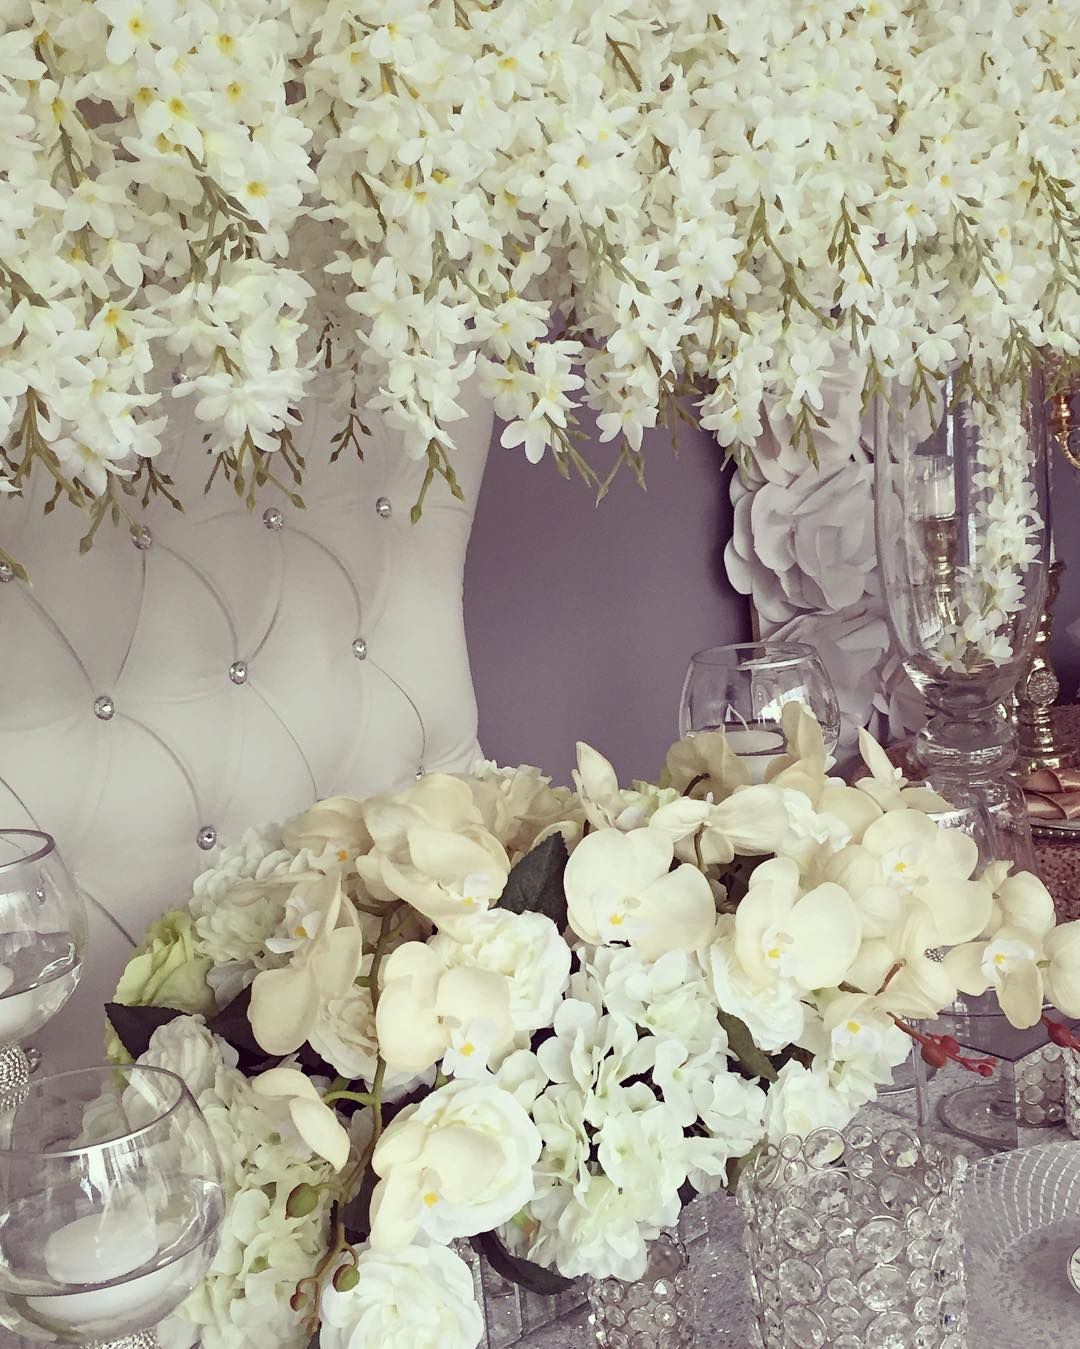 Sprucing up the showroom for spring appointments and designed this lovely all white tablescape with decorator Daniel Barker House of Design. Schedule your appointment for your upcoming wedding or event to see the full showroom! #sneakpeak #whitewedding #weddingflowers #headtable #floraldesign #silver #luxury #orchids #floralcanopy #torontowedding #torontoflorist #weddingdesign #weddingideas #weddinginspiration #collaboration #ashtoncreative #Alamango #Bridal #Textiles #Wedding…